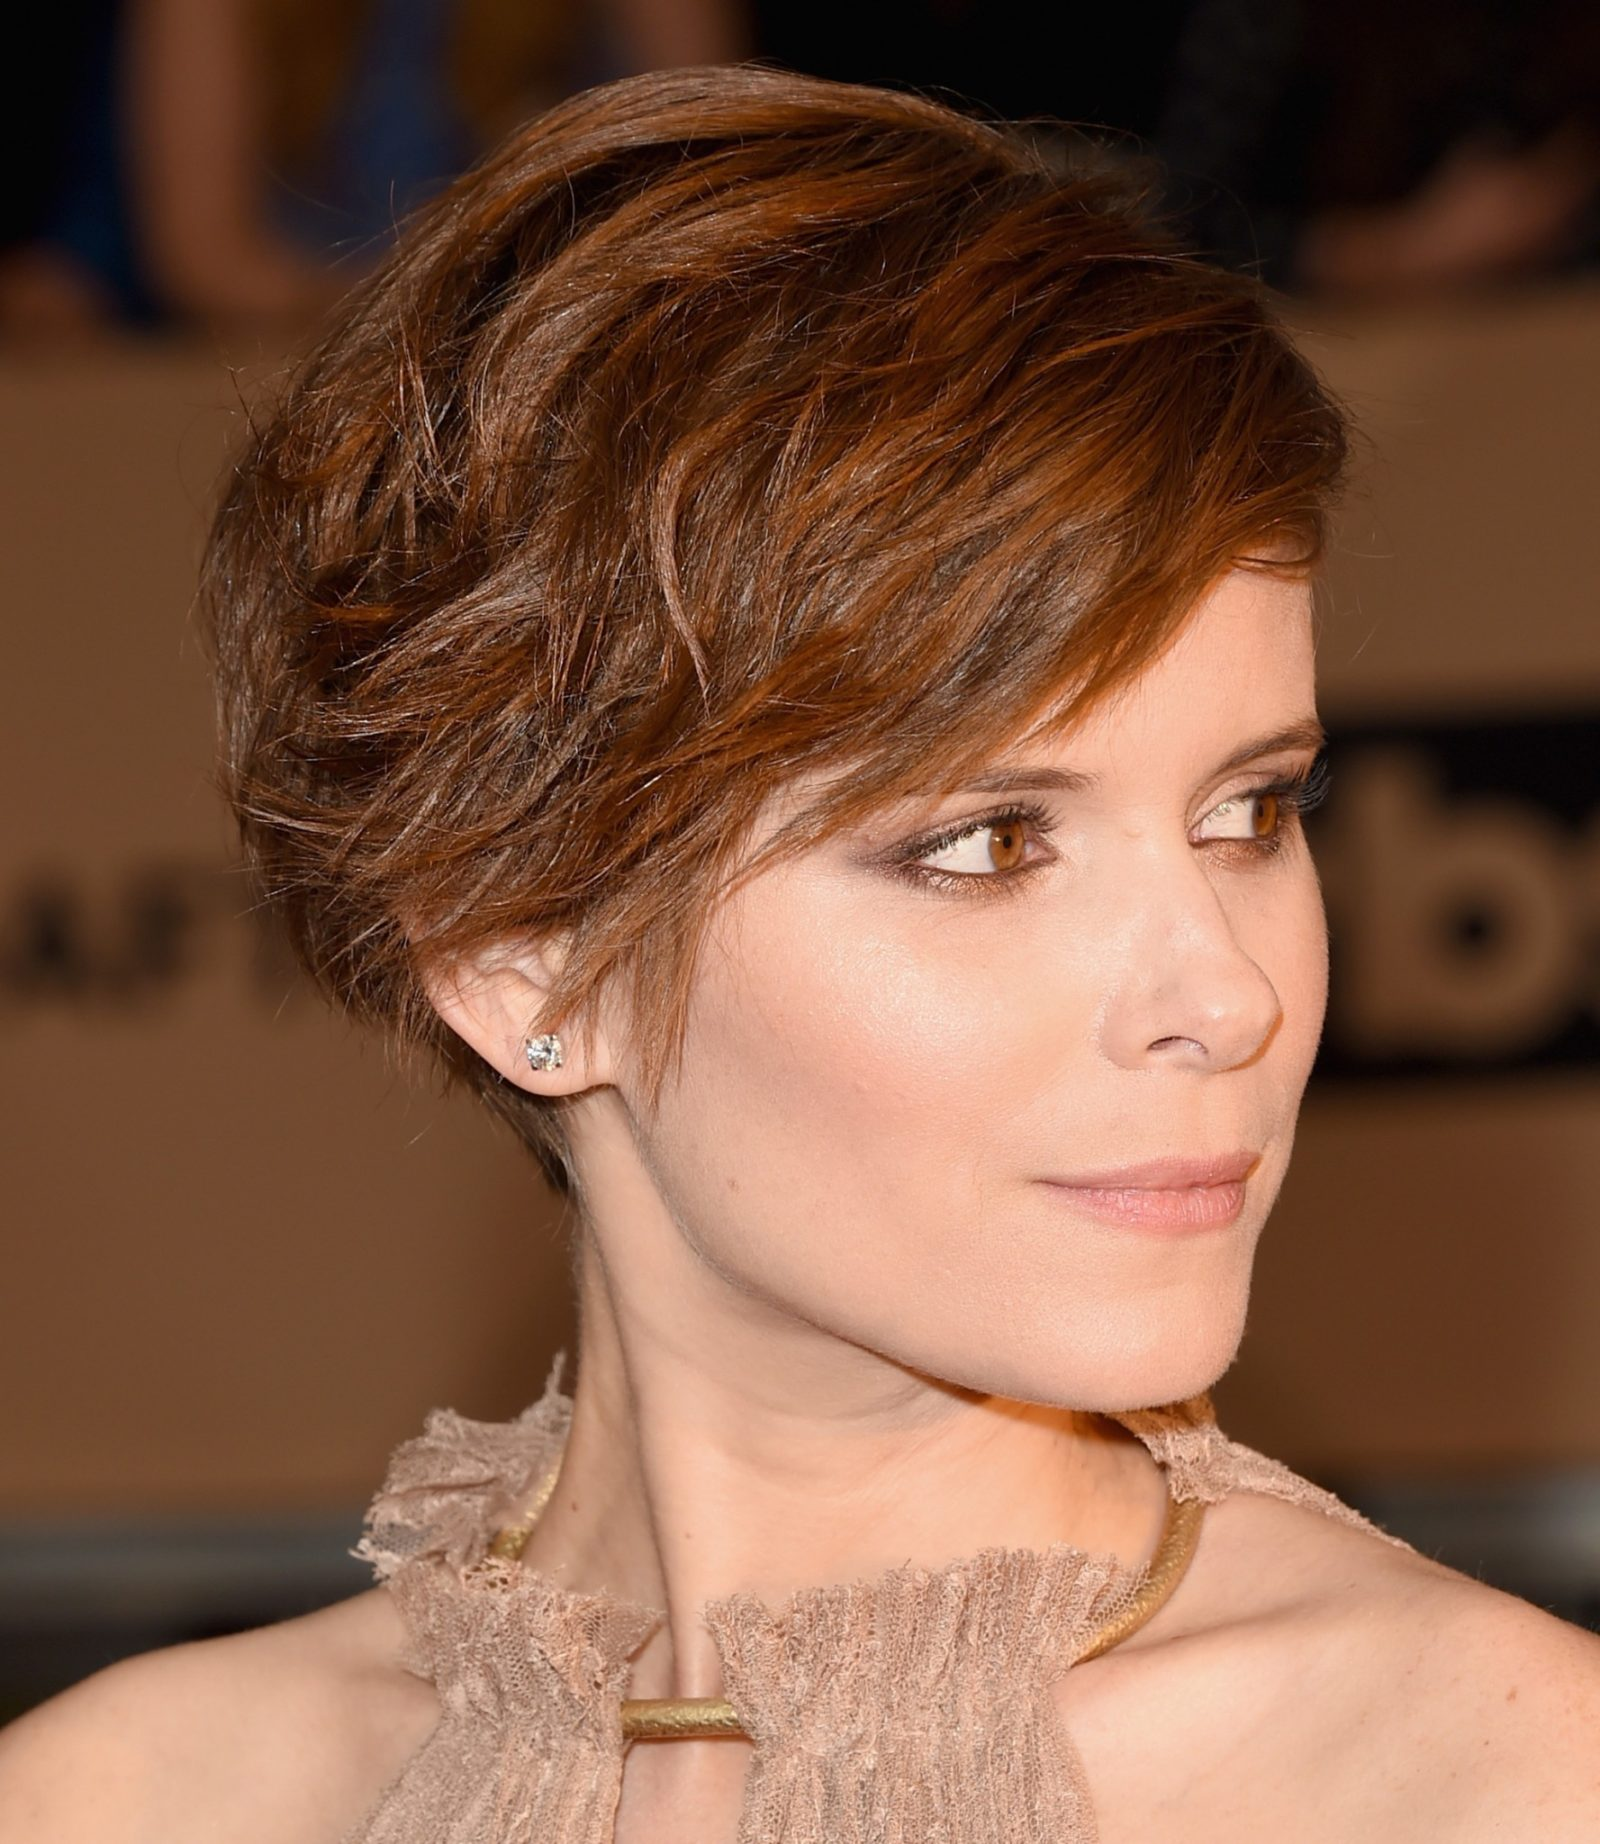 Kate Mara's haircut SAG Awards